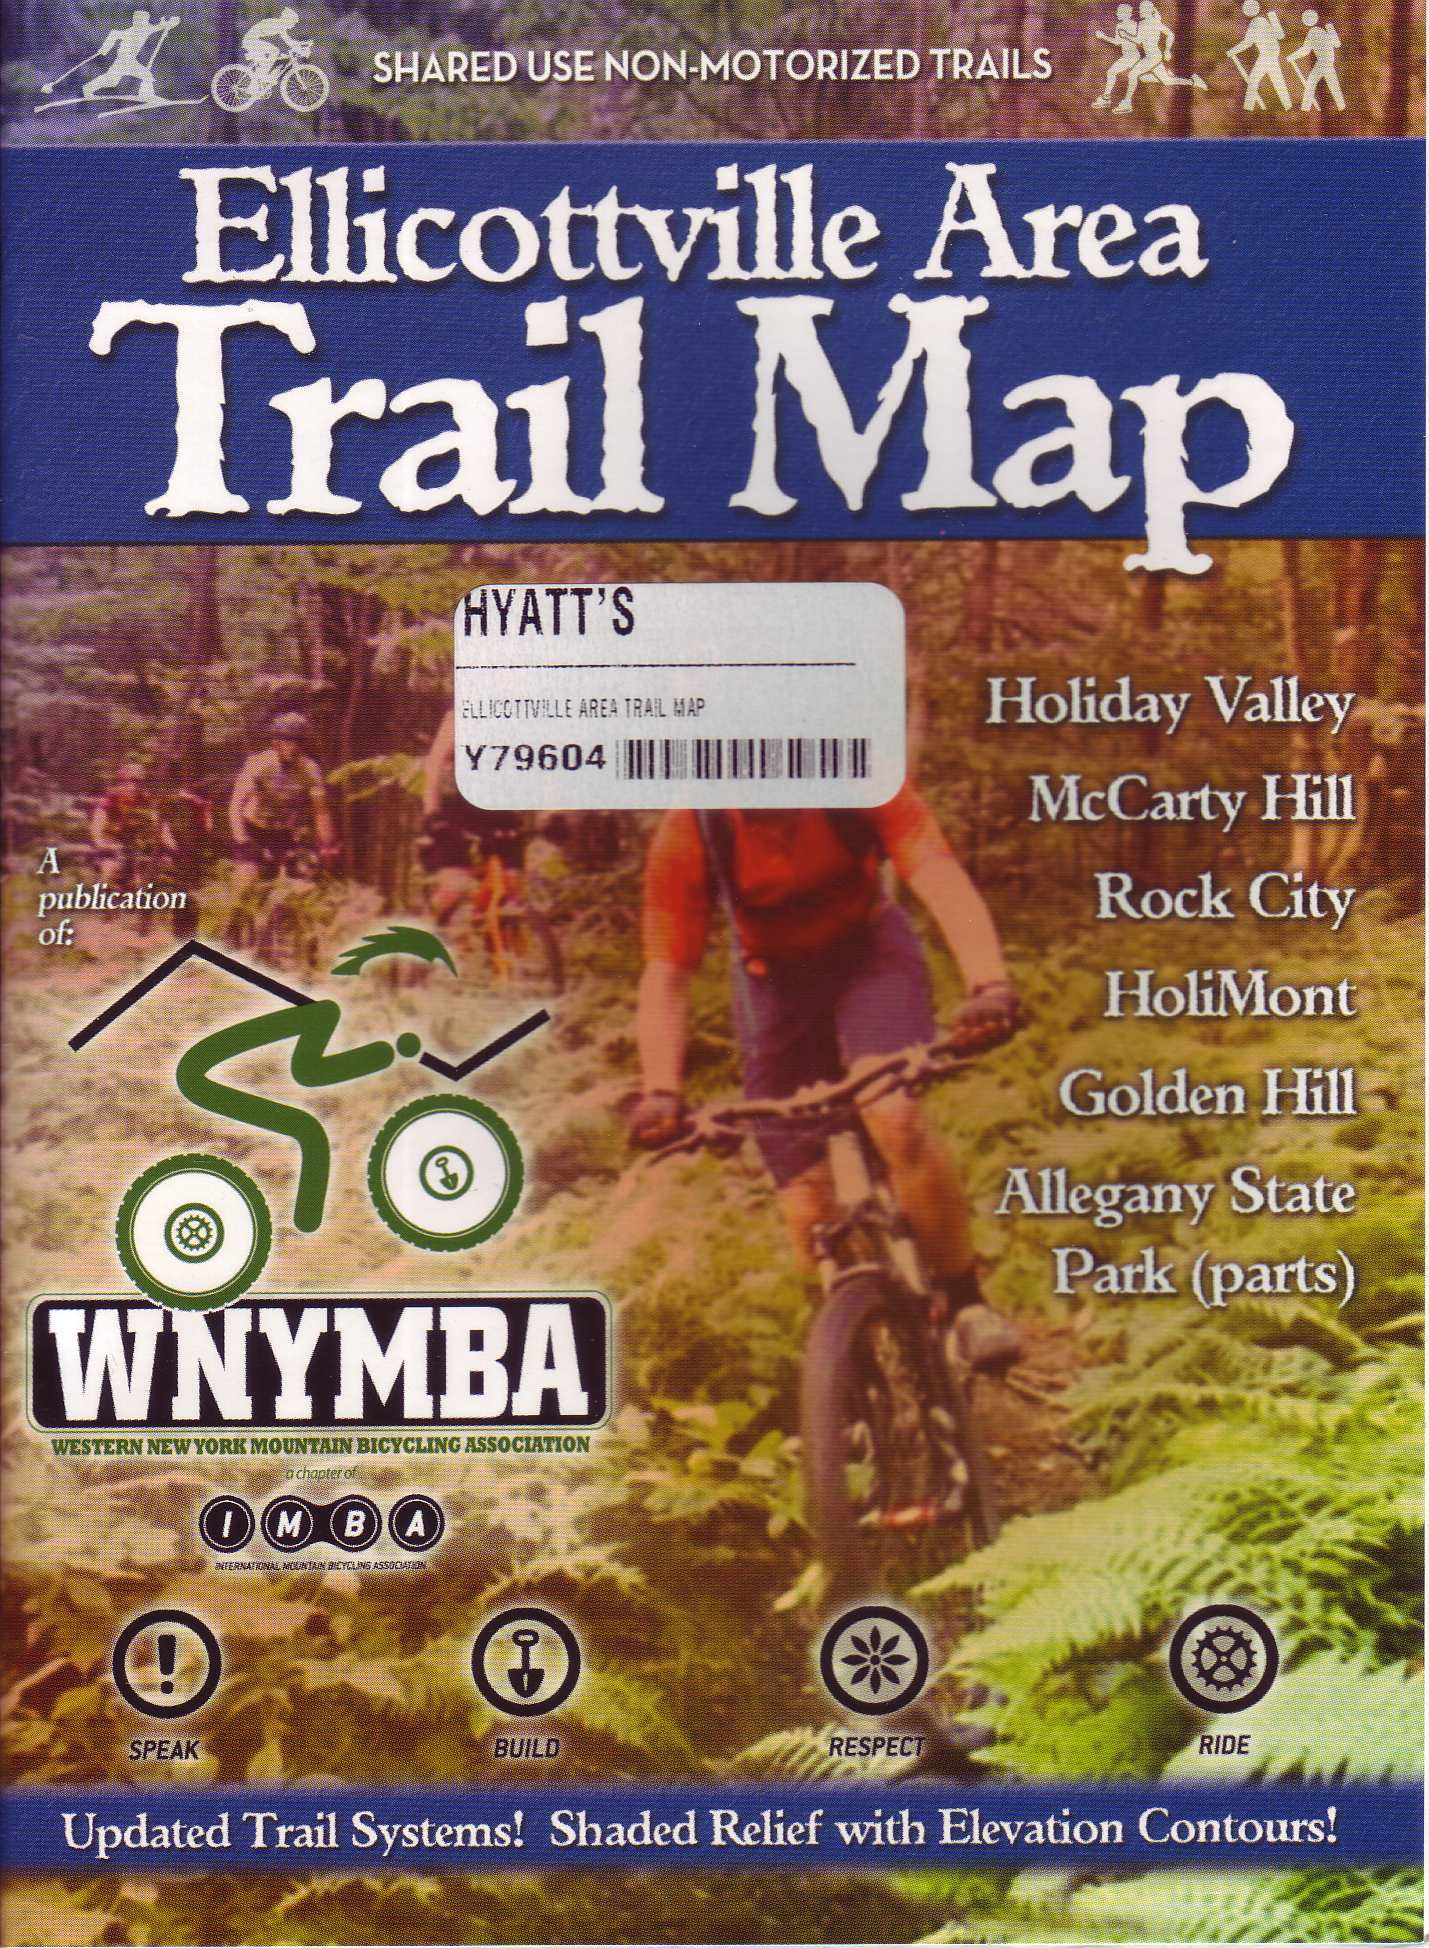 Ellicottville Area Trail Map